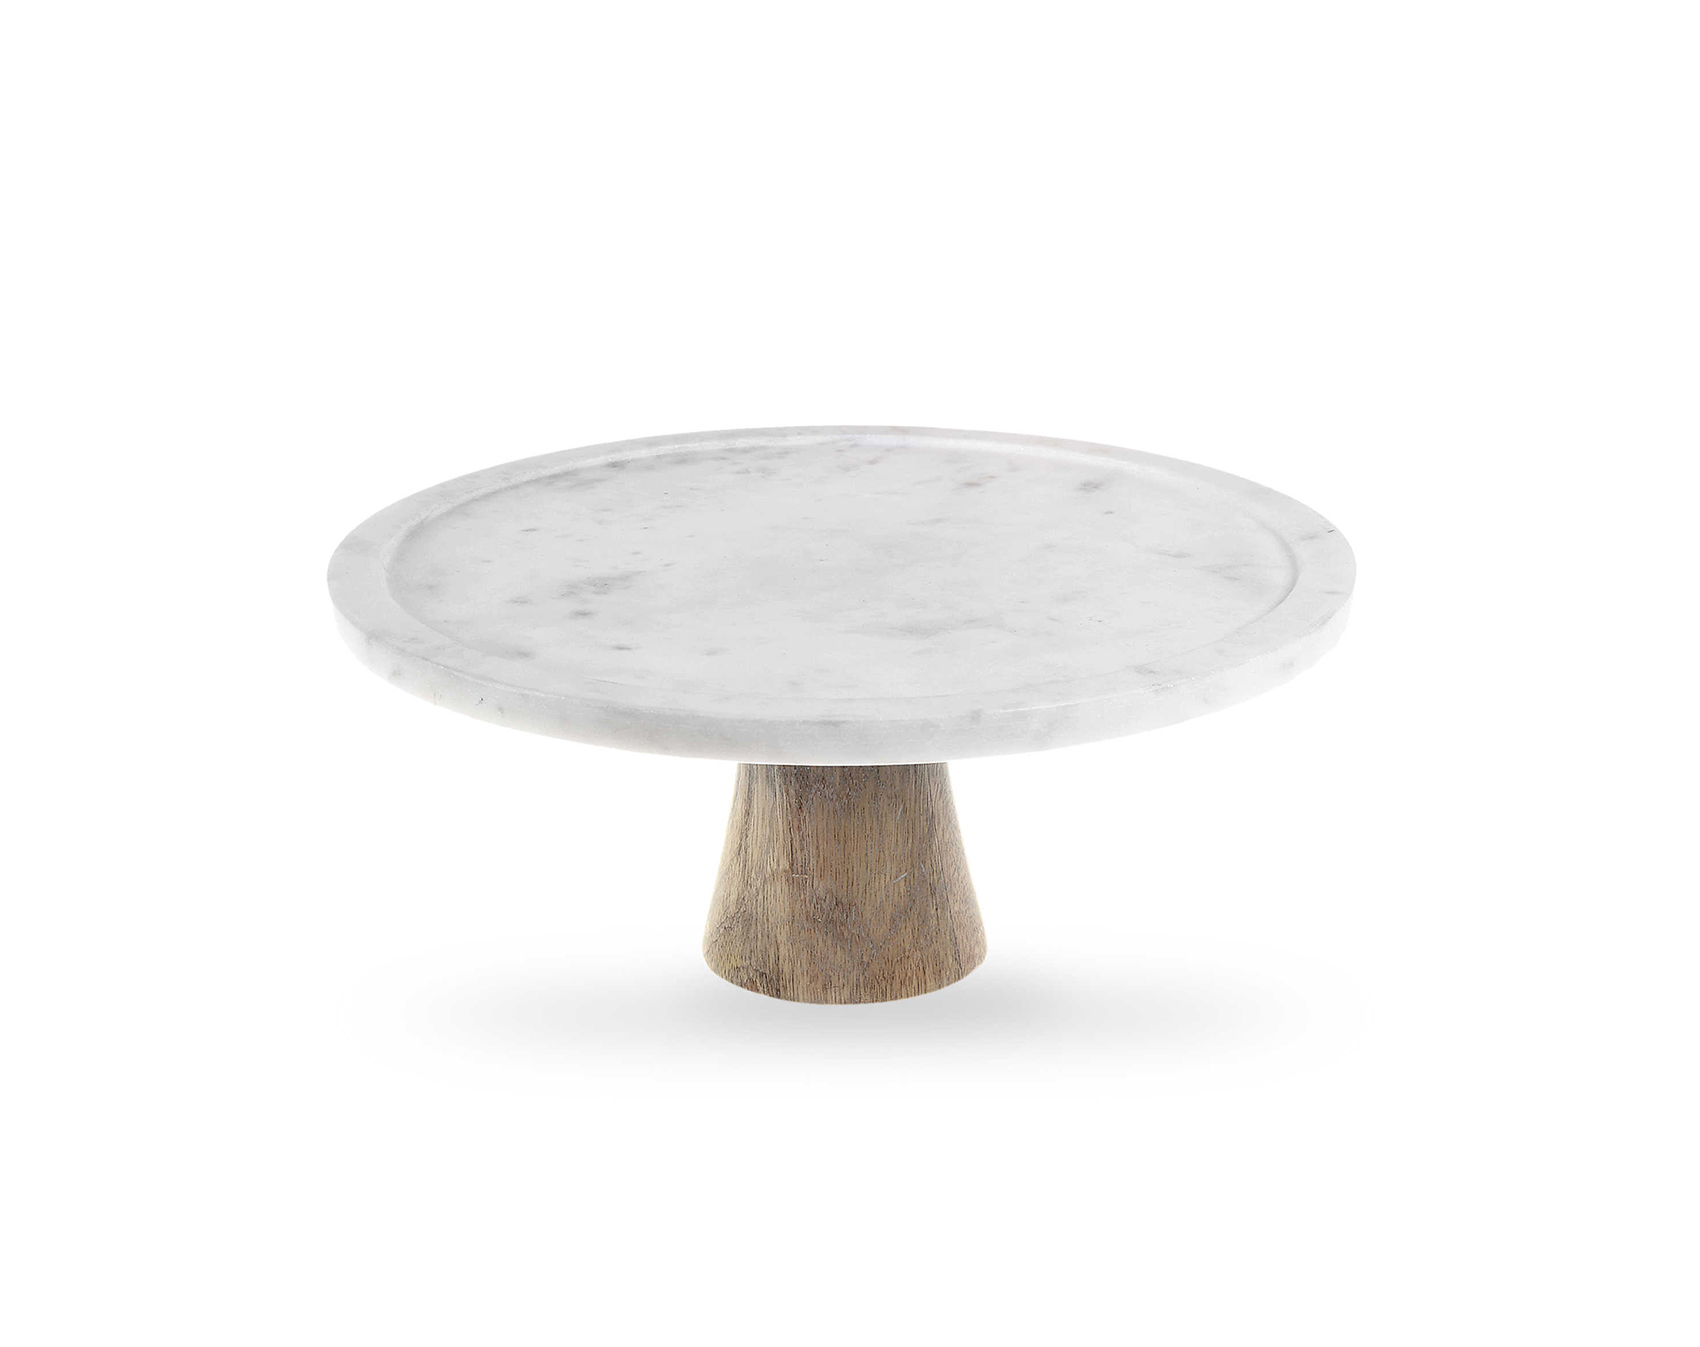 Bed Bath and Beyond Artisanal Kitchen Supply White Marble and Wood Cake Stand